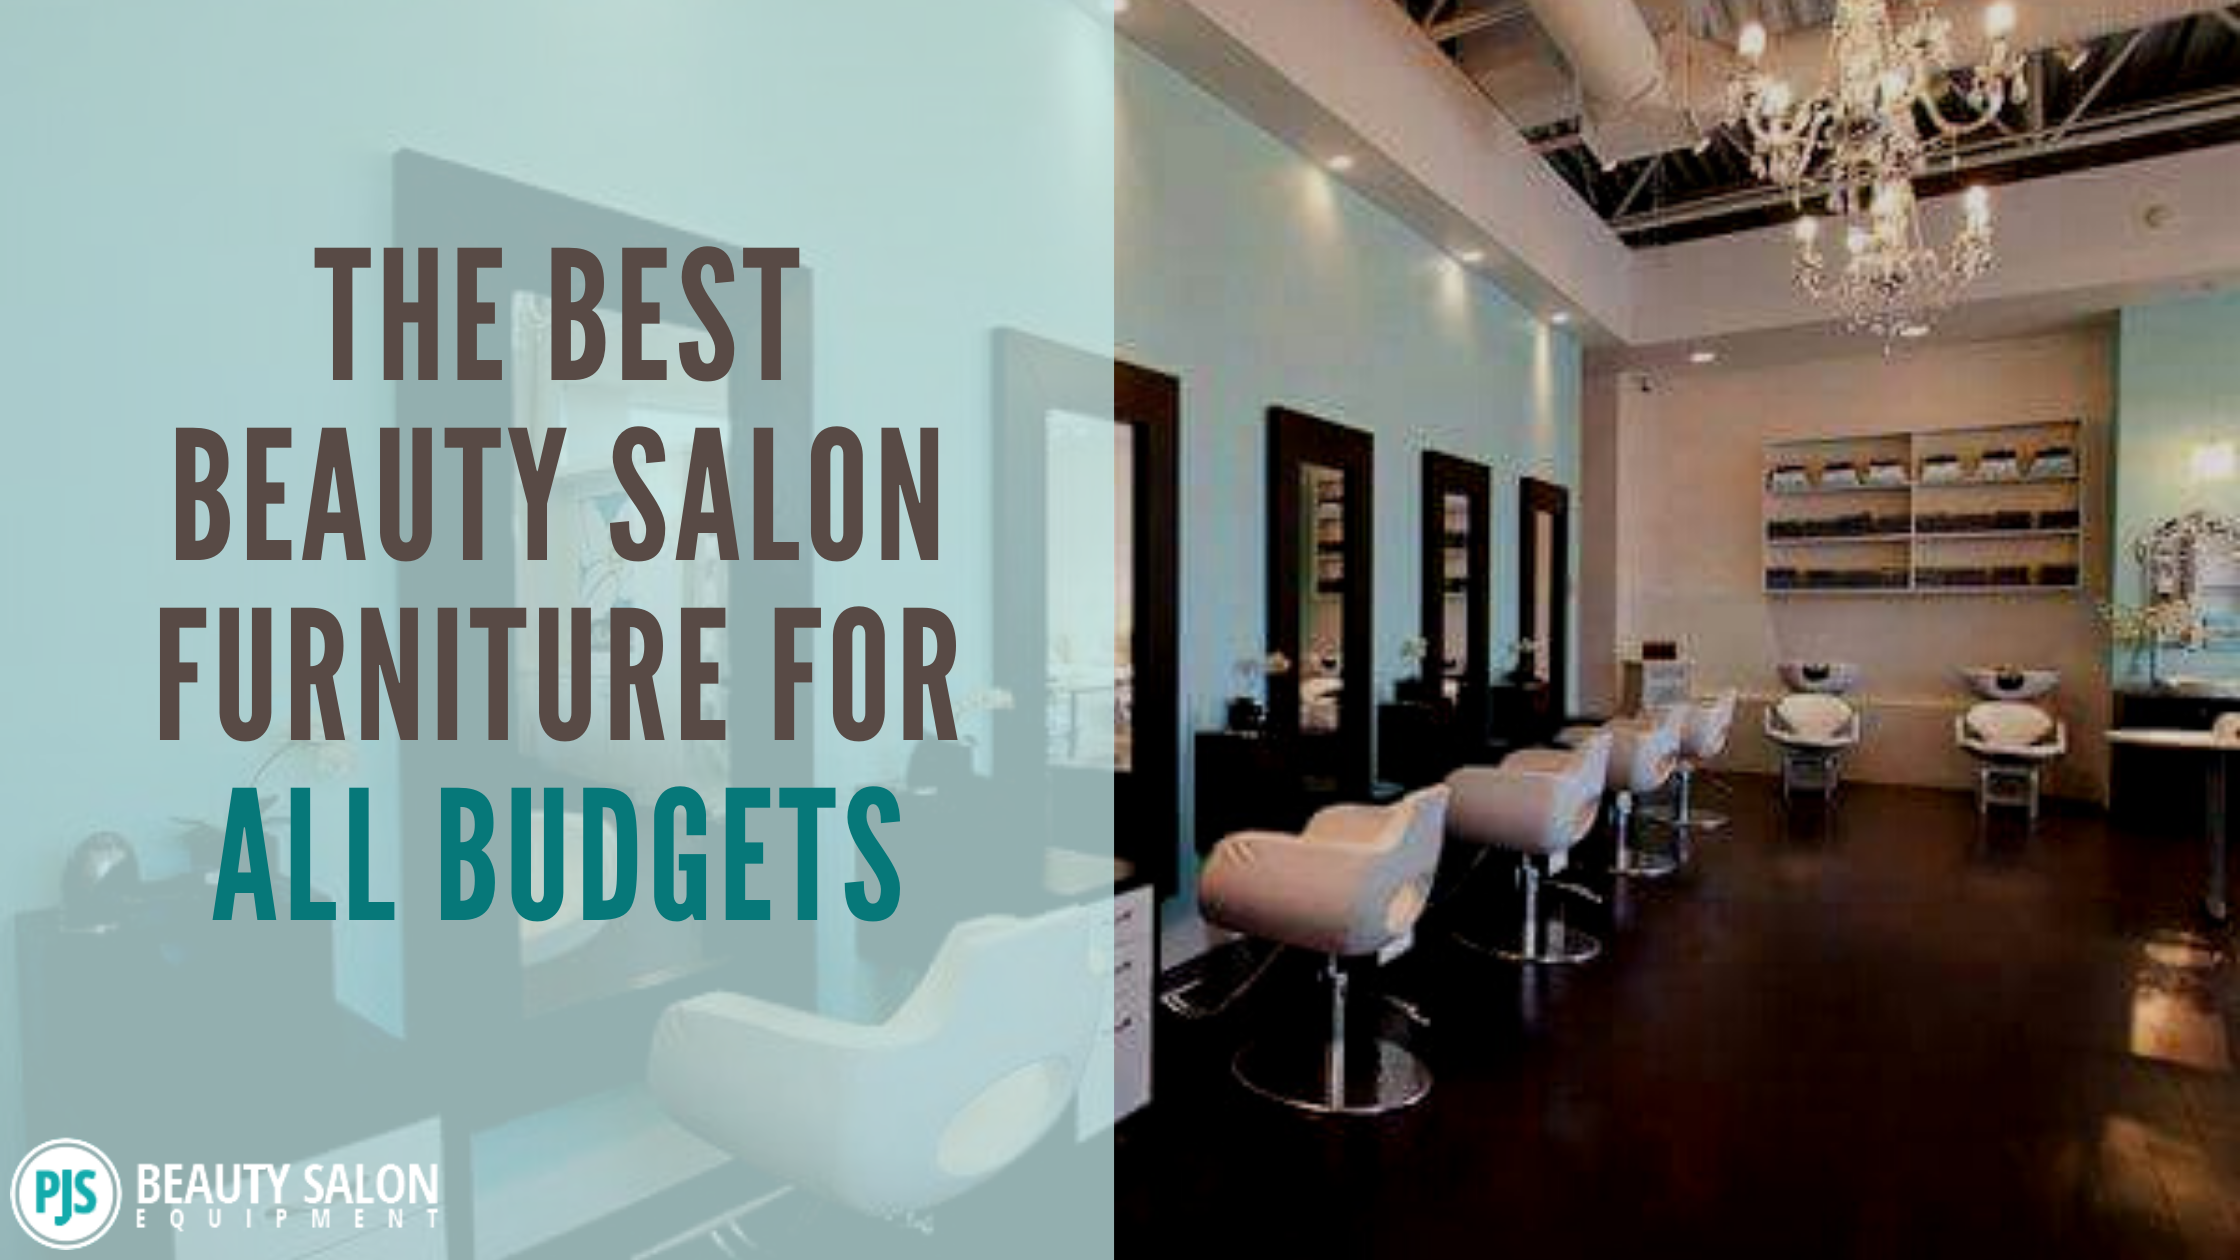 The Best Beauty Salon Furniture For All Budgets